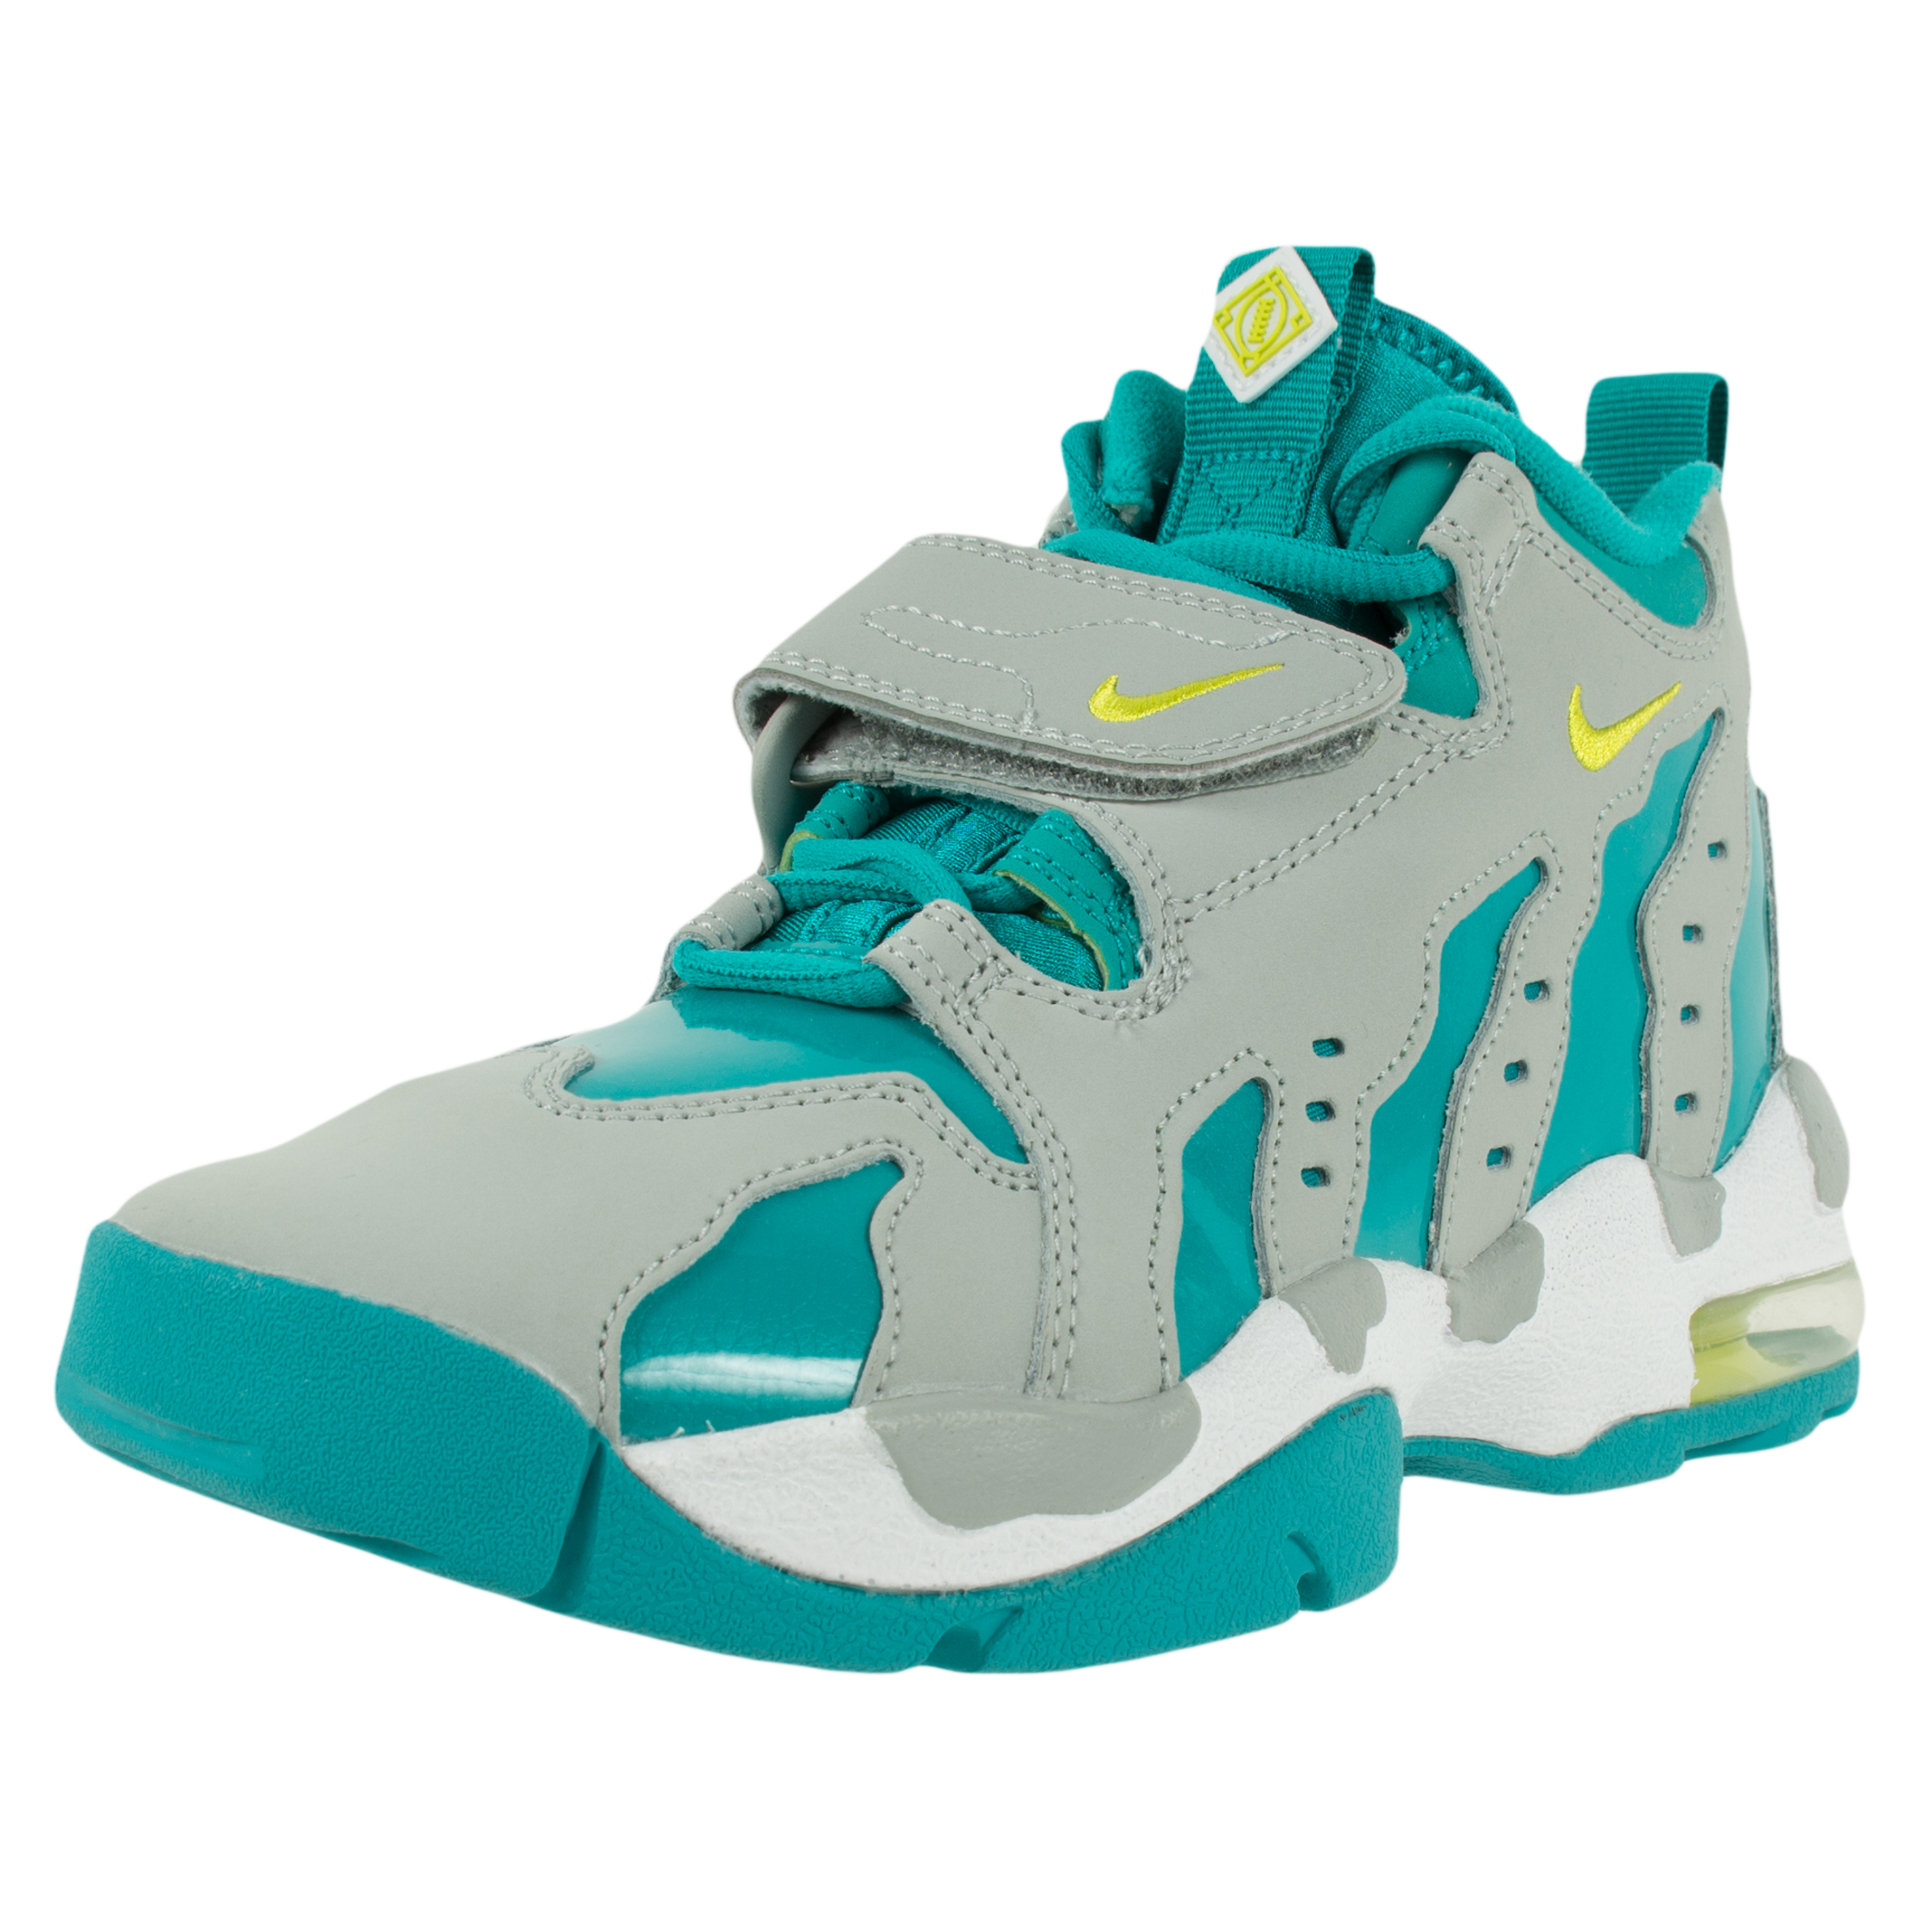 Nike YOUTH AIR DT MAX '96 GS CROSS TRAINERS WOLF GREY VEN...